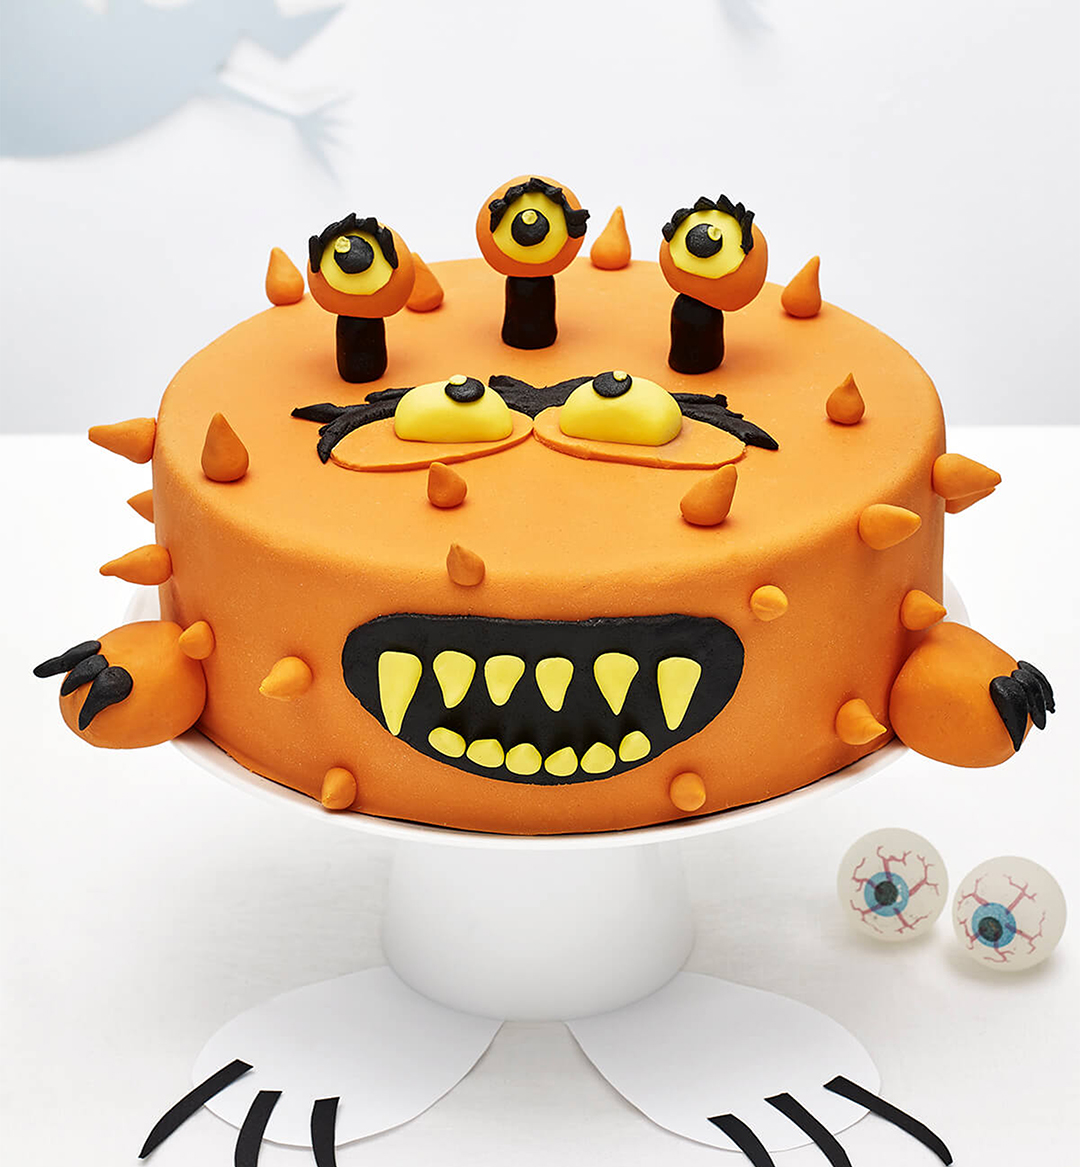 MONSTER CAKE KIT